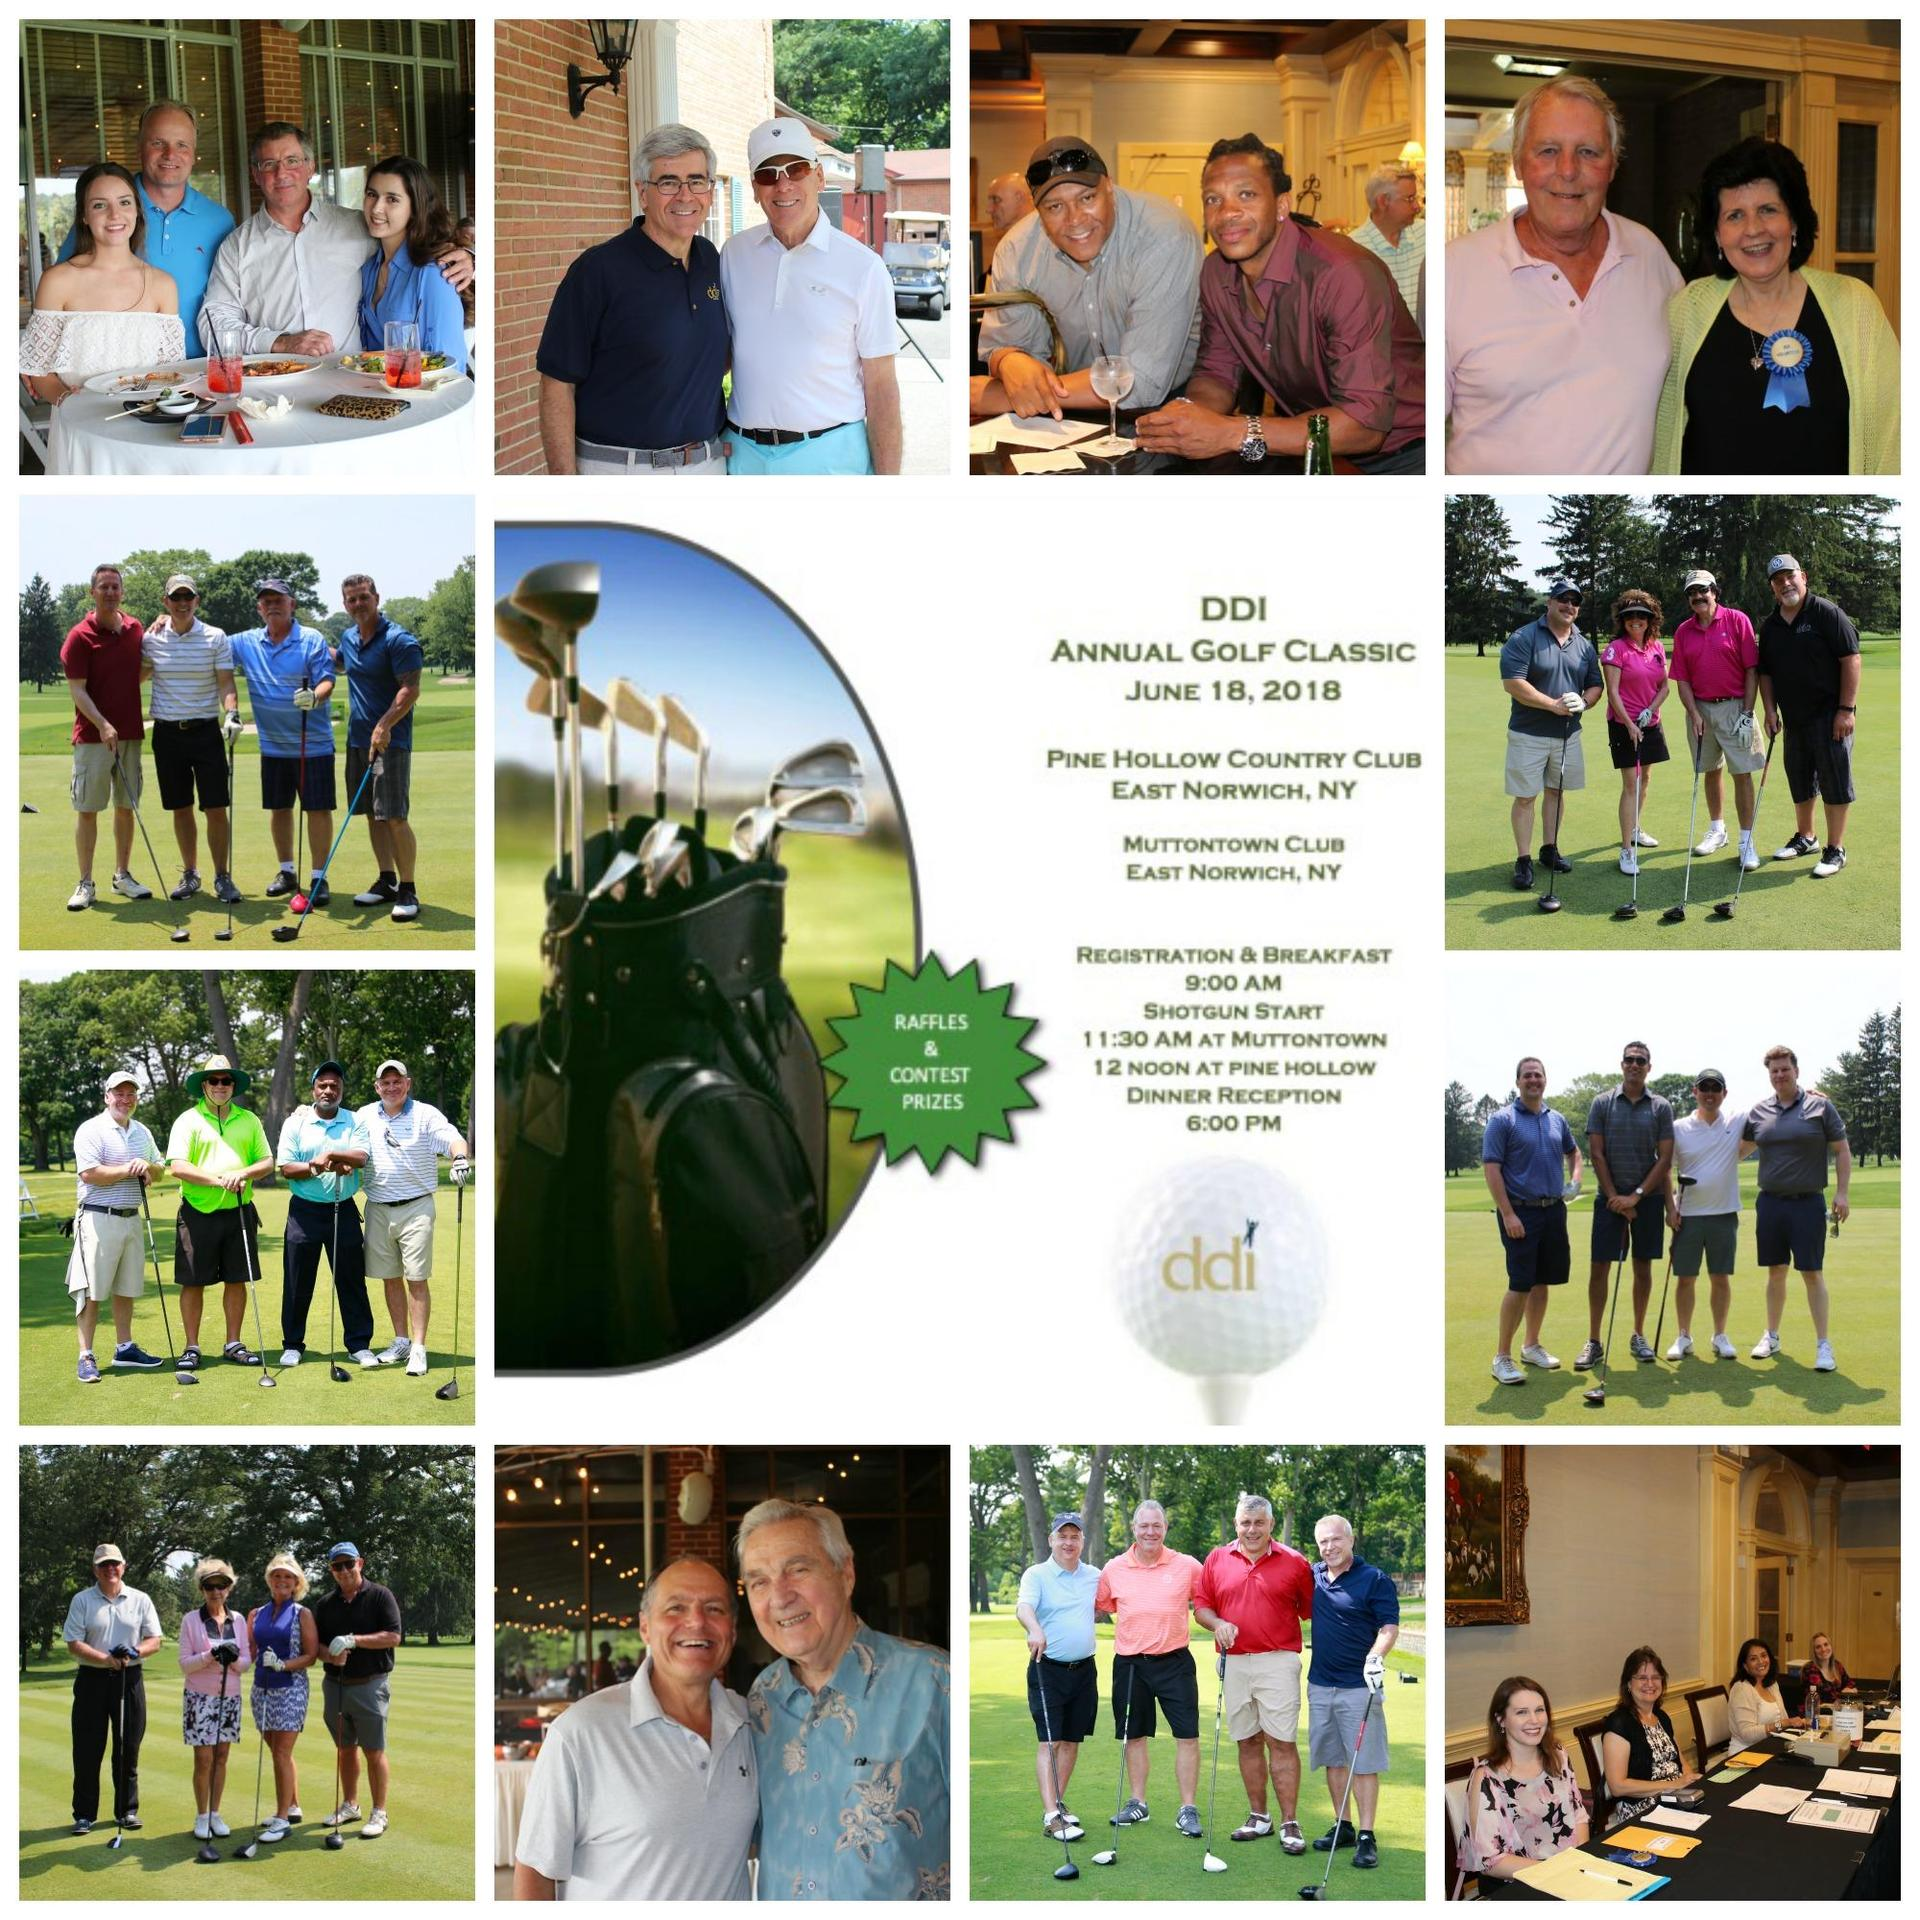 Collage of DDI 2018 Golf Classic attendees